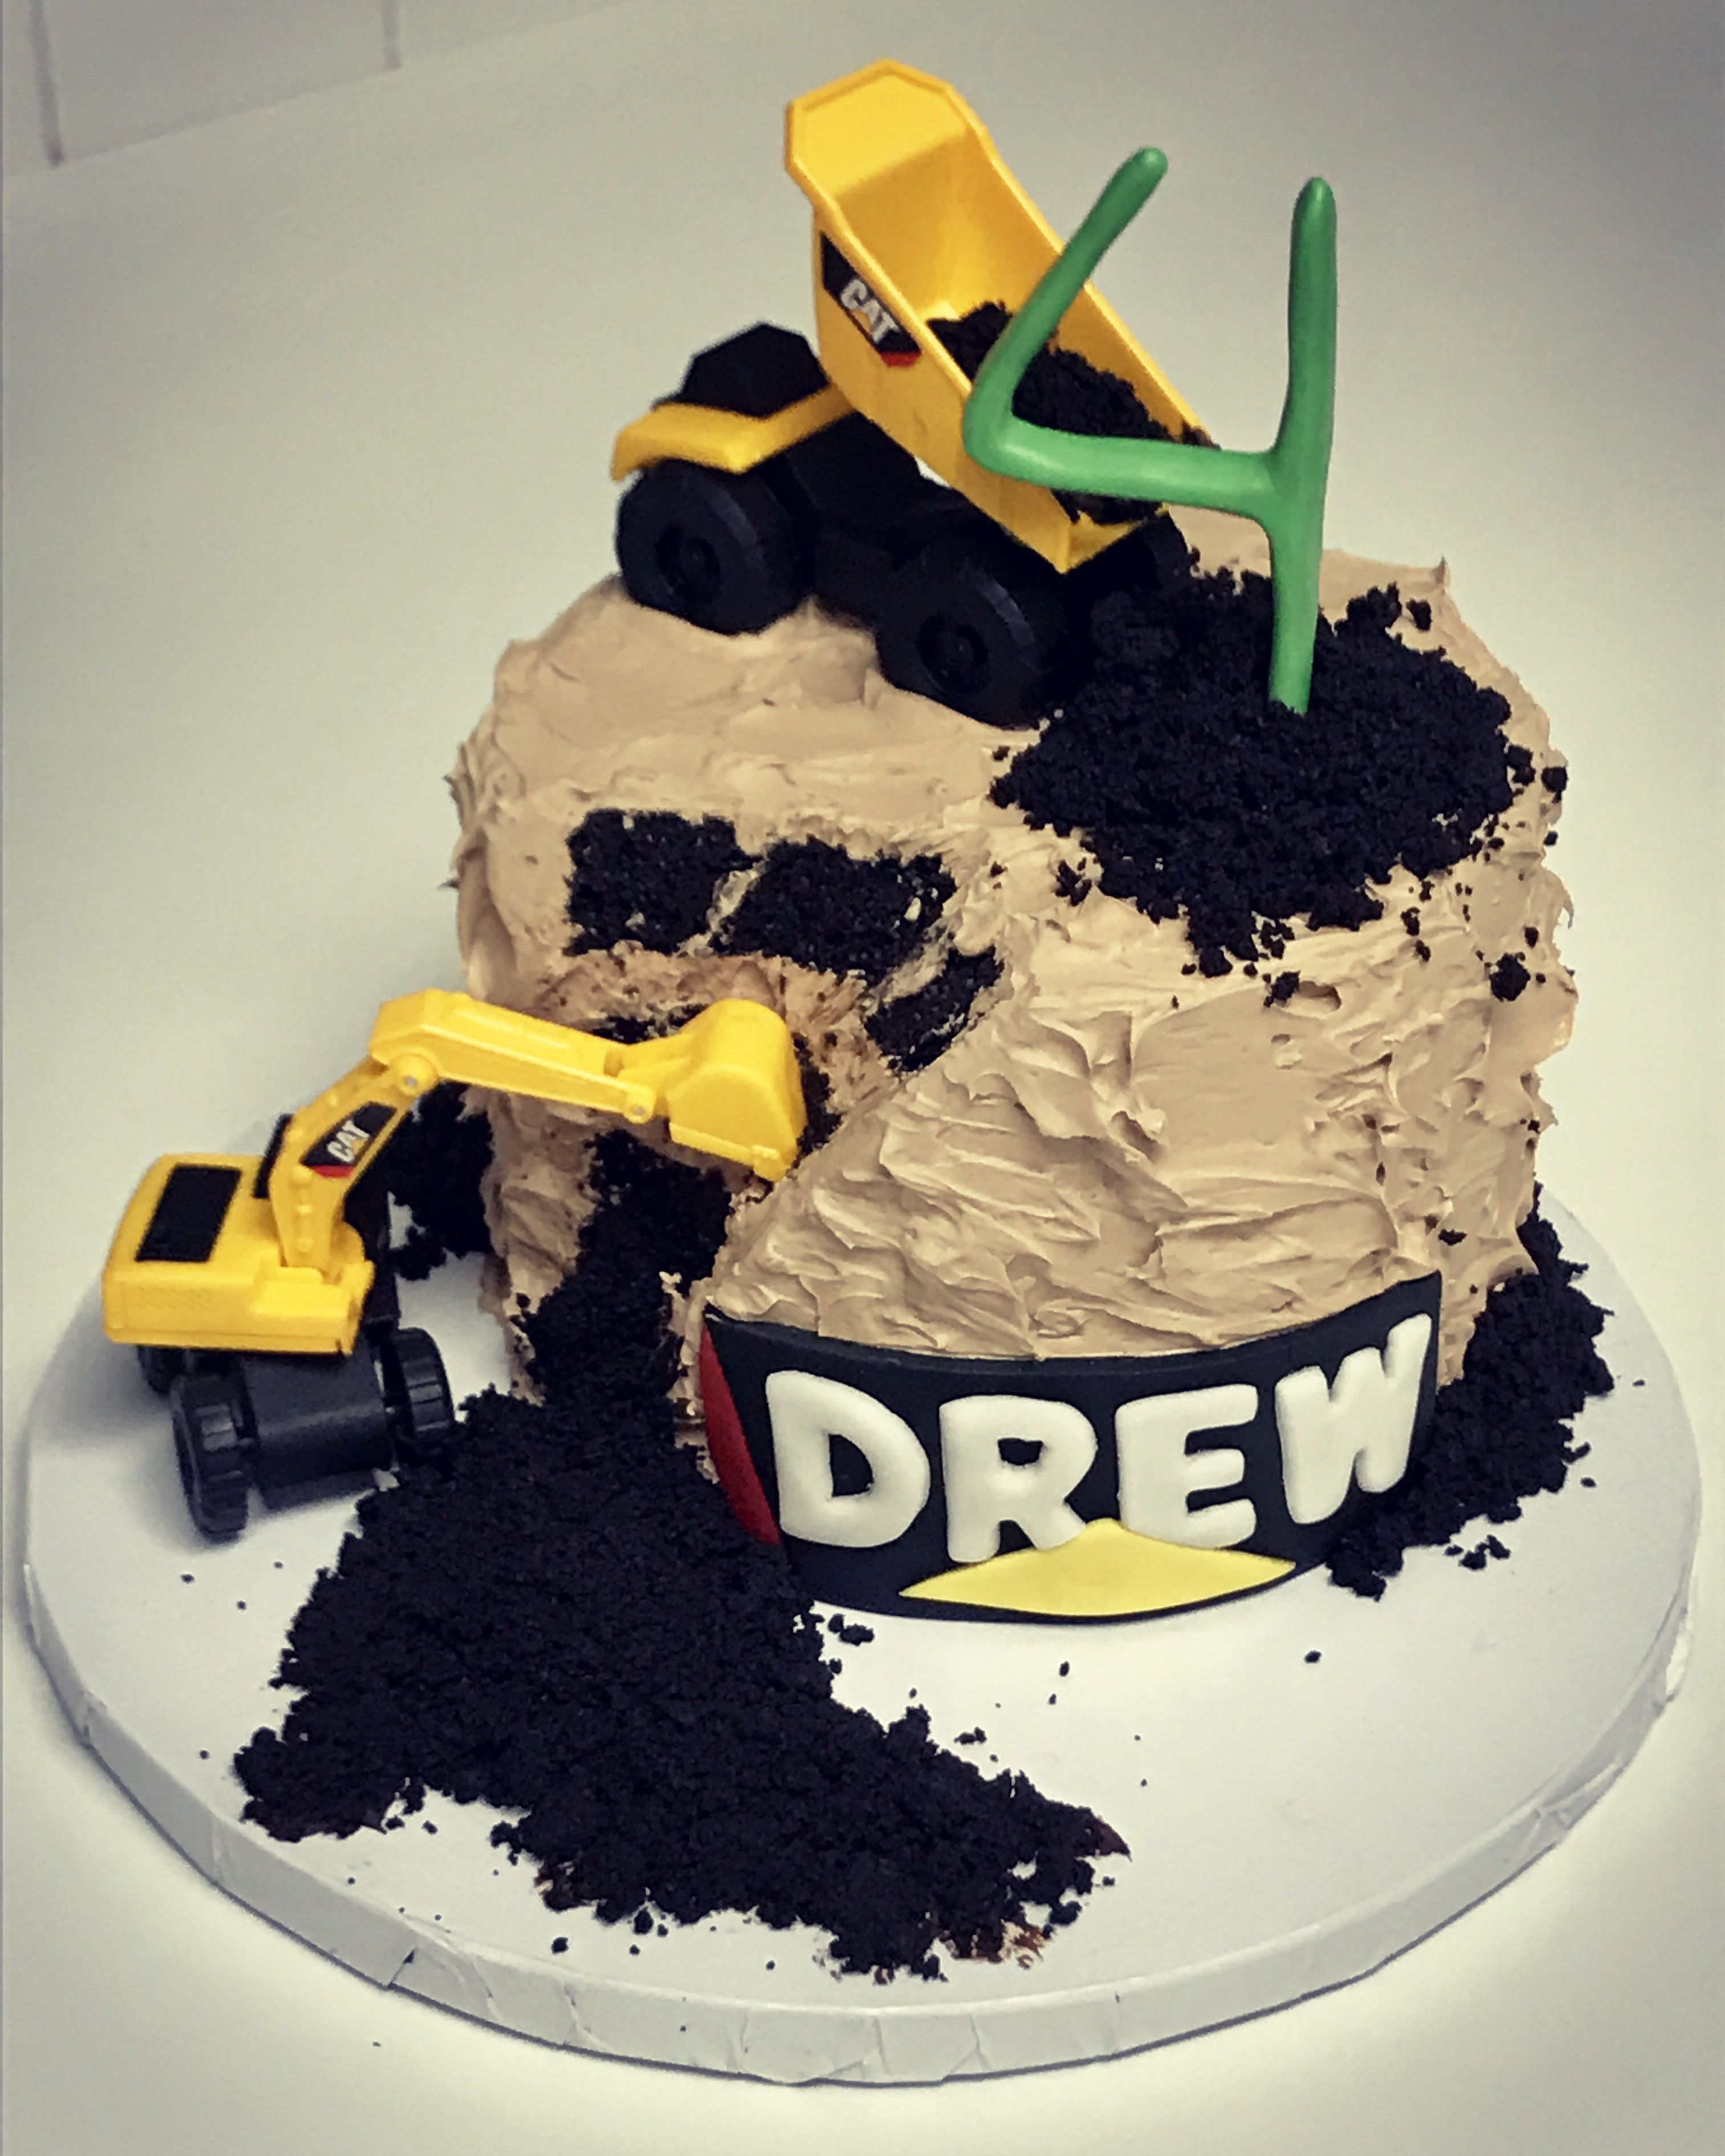 Awesome Birthday Cakes Awesome Demolition Cake For An Awesome Birthday Boy Happy Birthday